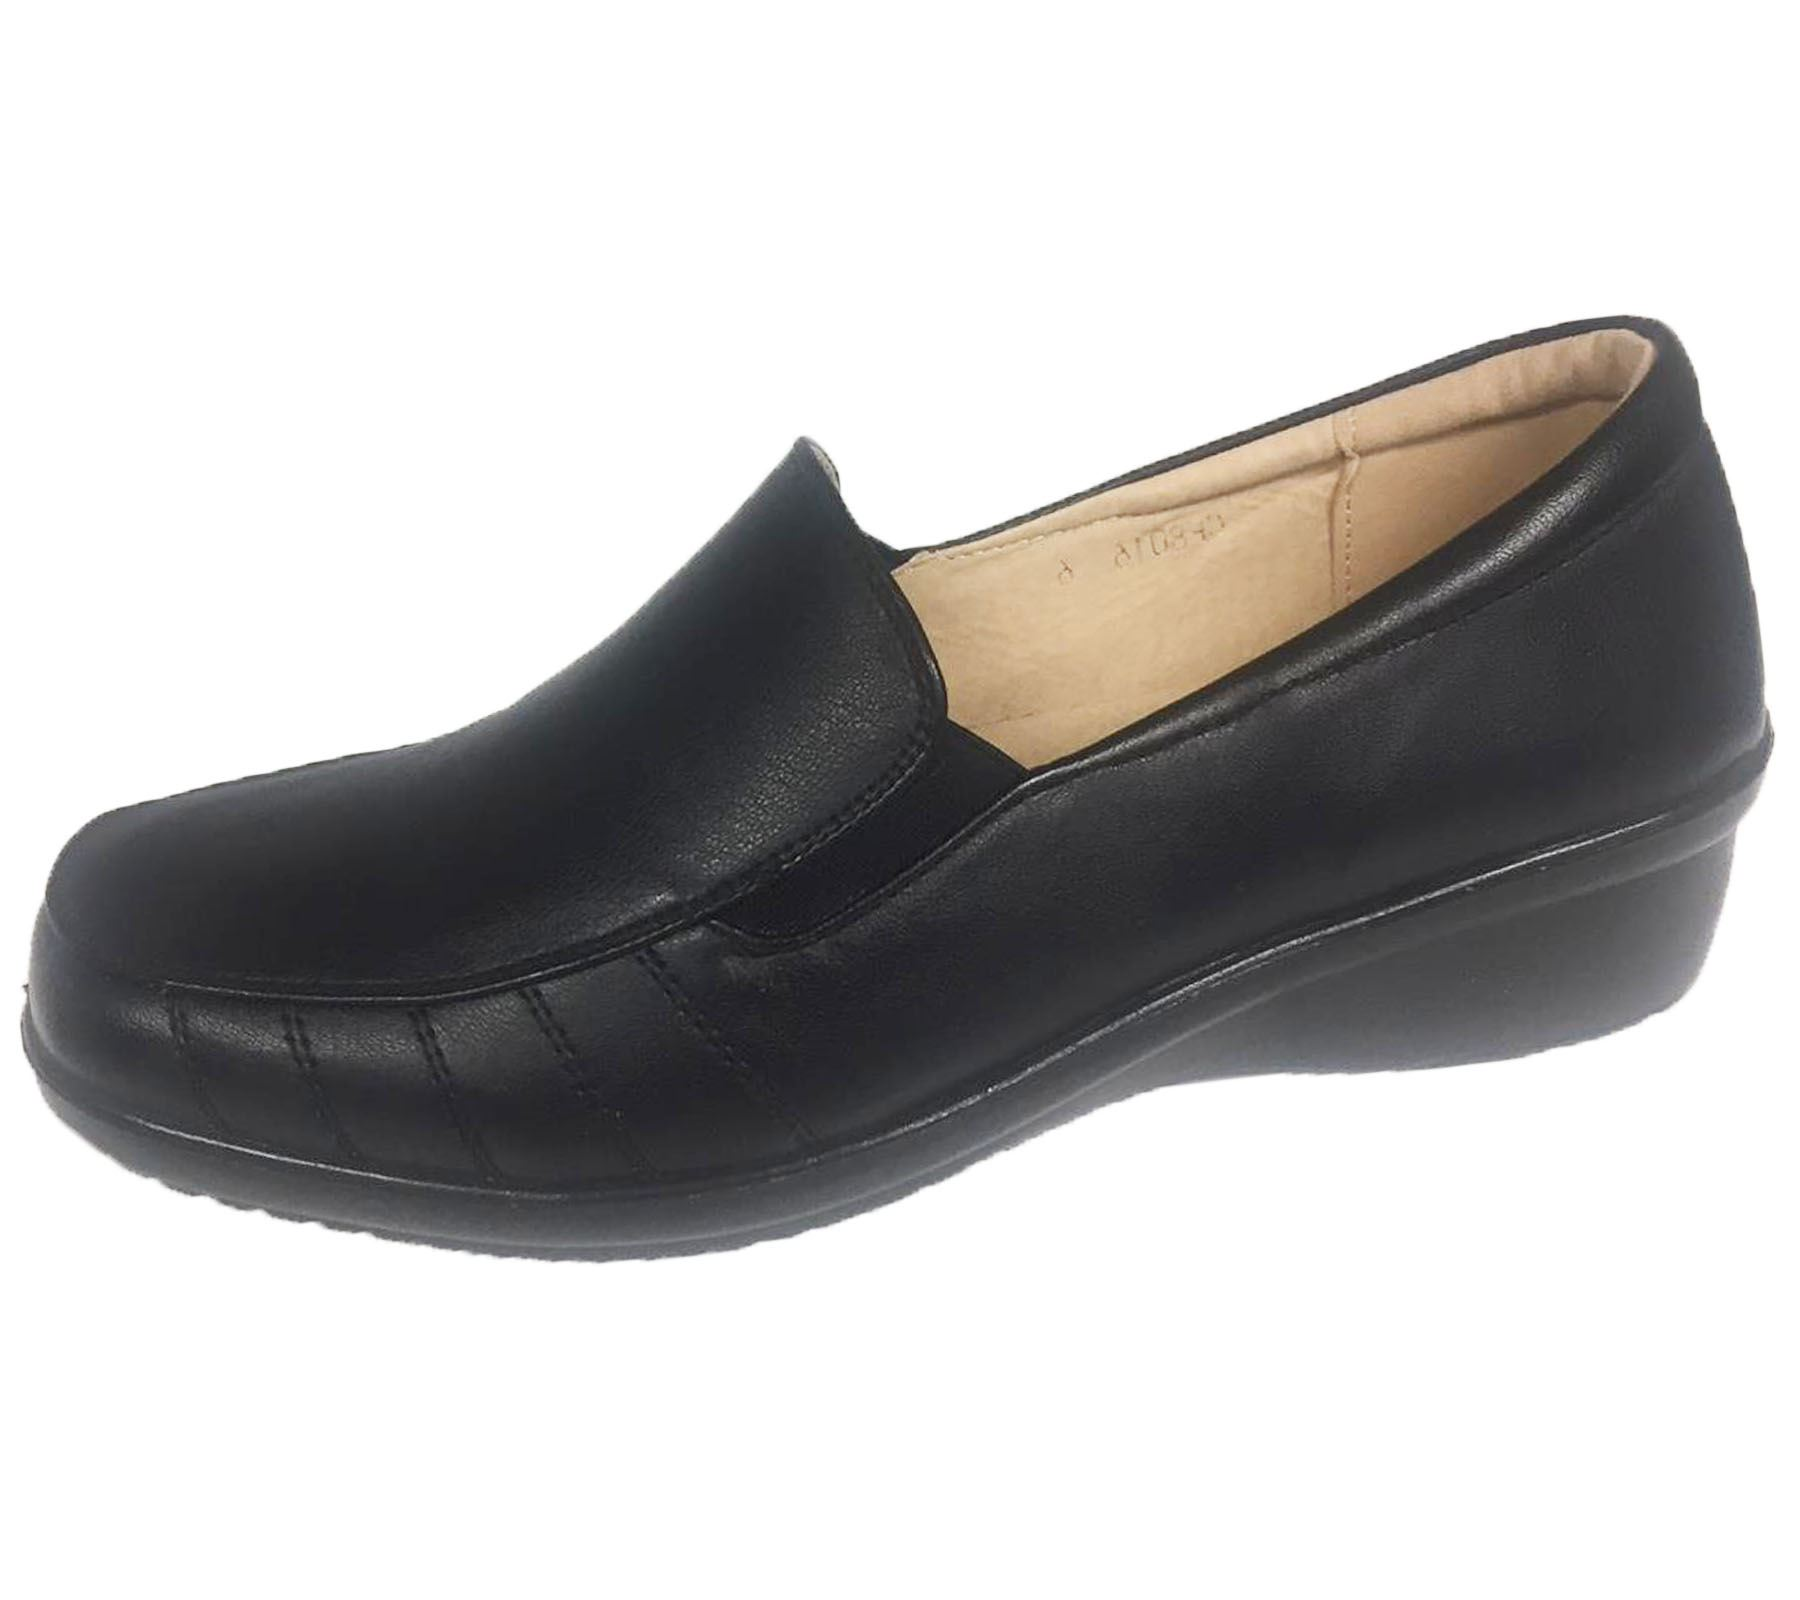 Ladies-Loafer-Moccasin-Womens-Casual-Comfort-Walk-Pumps-Slip-On-Shoes thumbnail 3